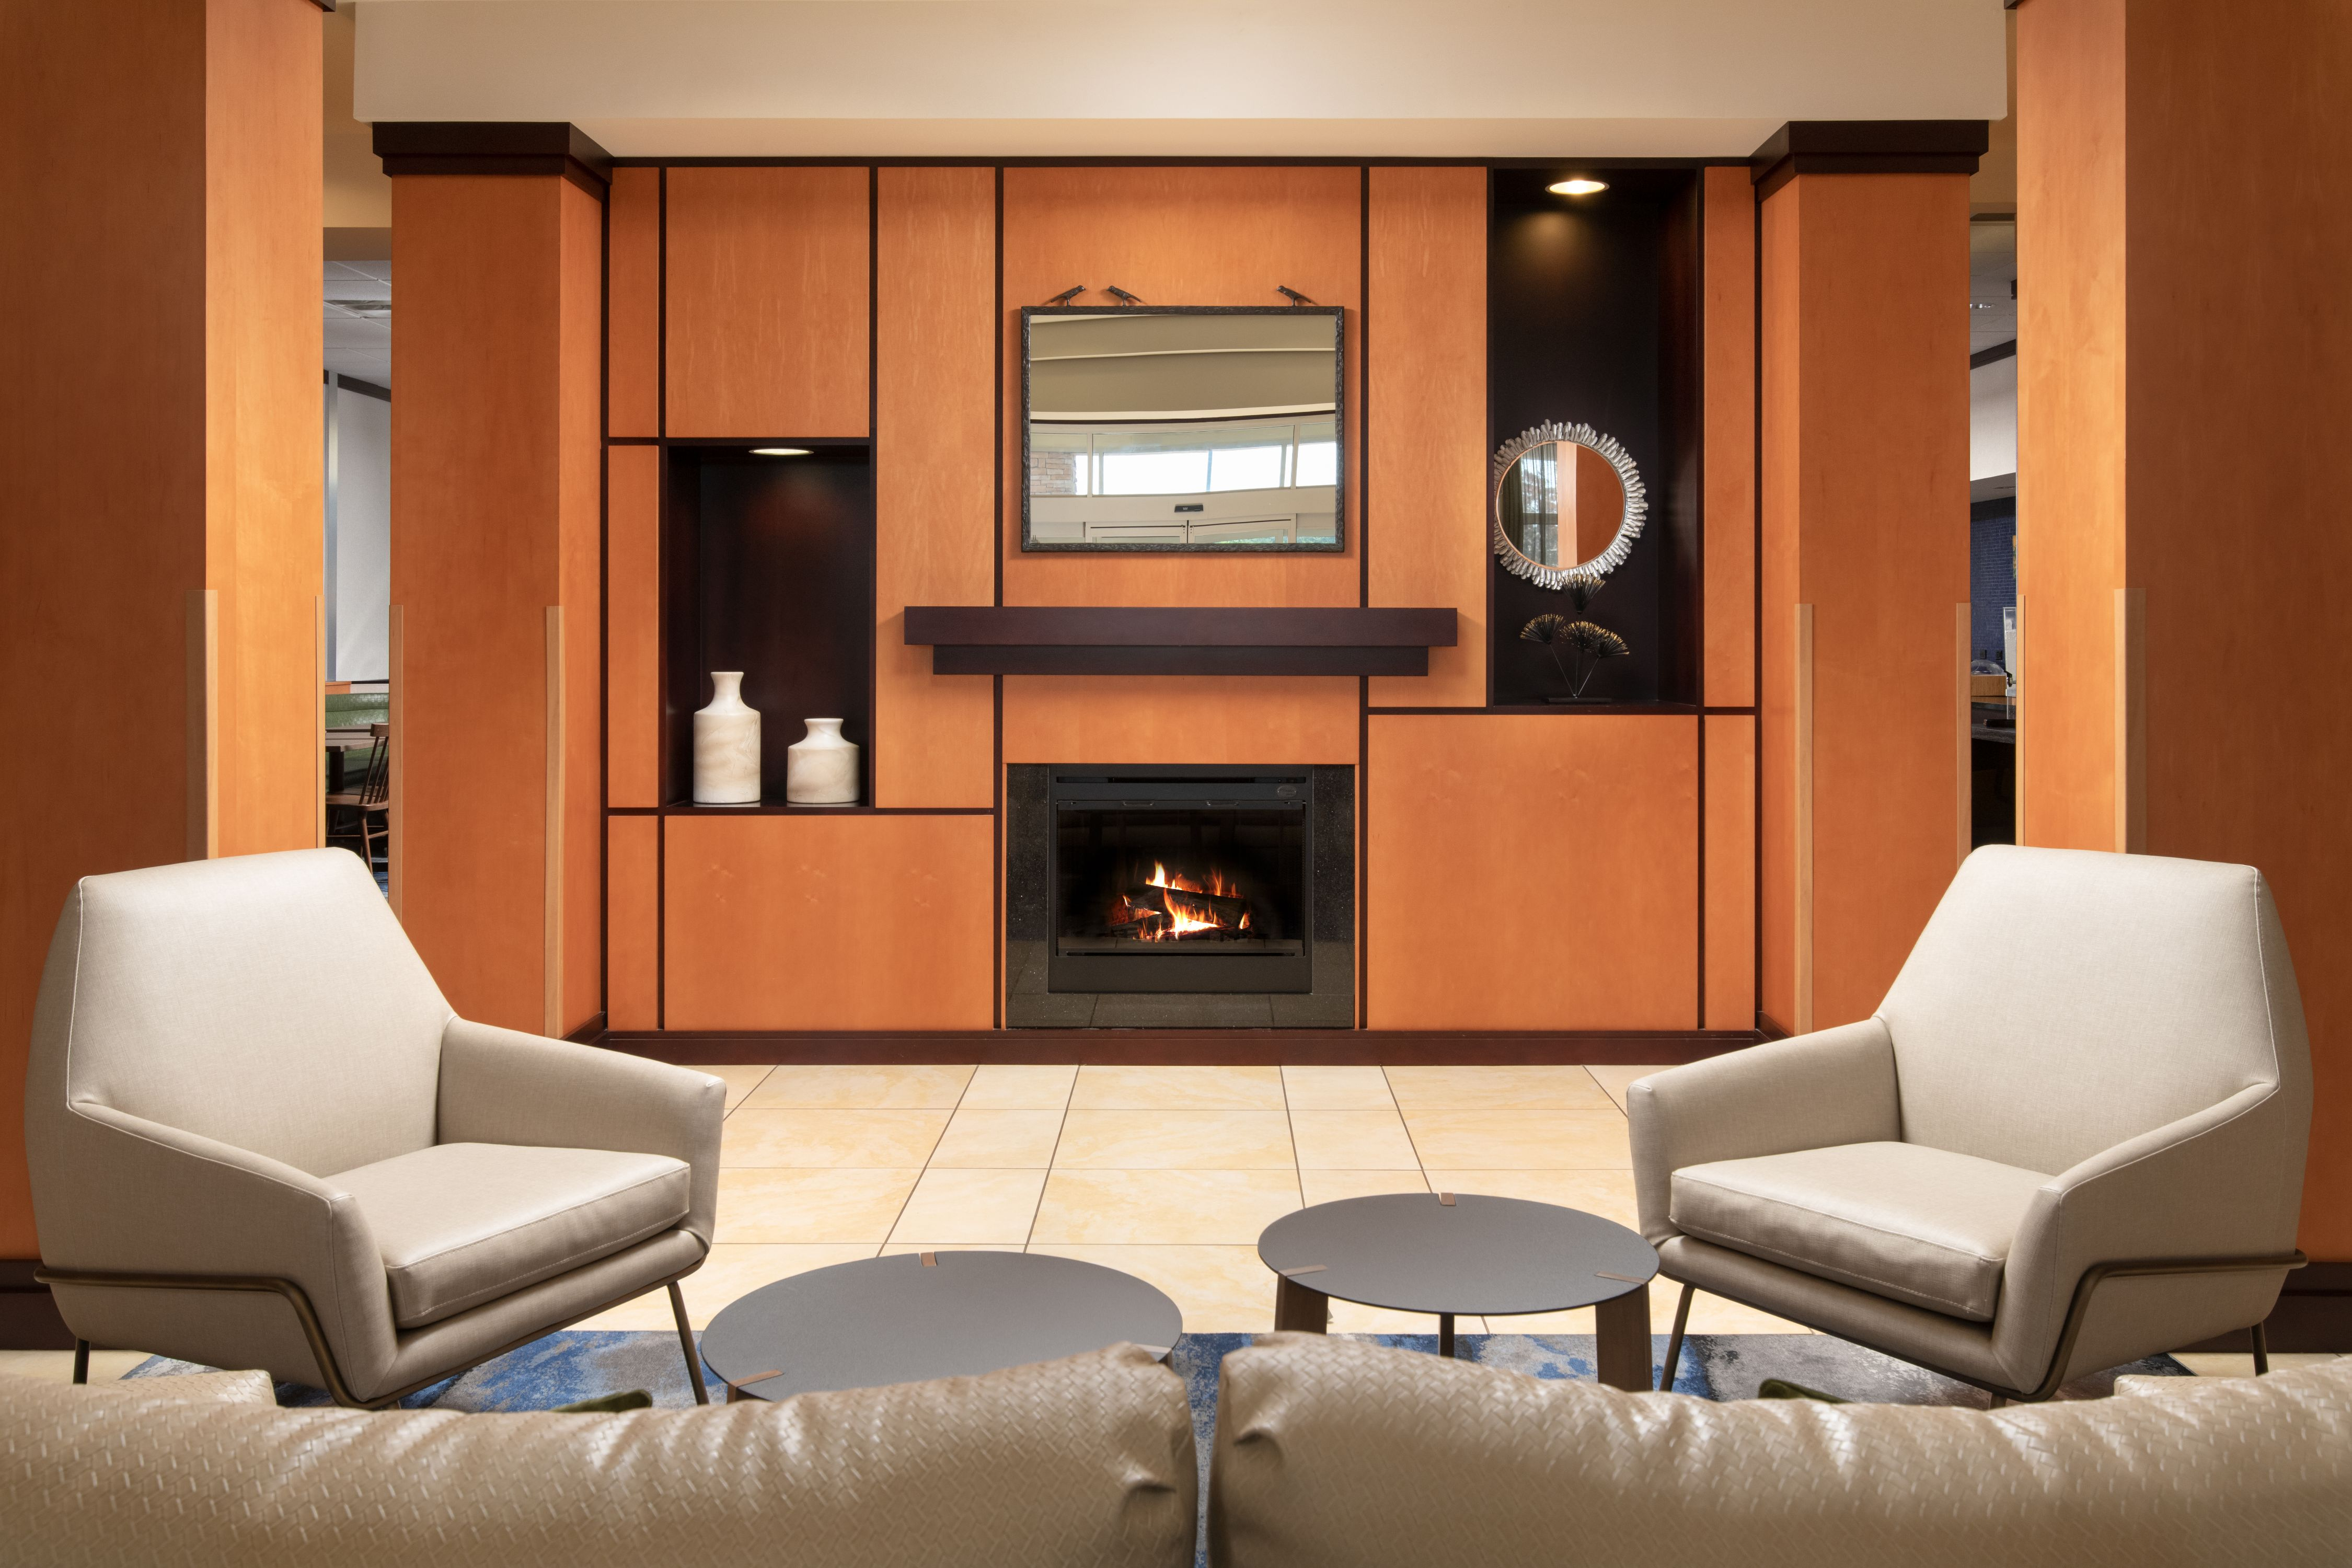 Fairfield Inn & Suites by Marriott Chattanooga I-24/Lookout Mountain image 3